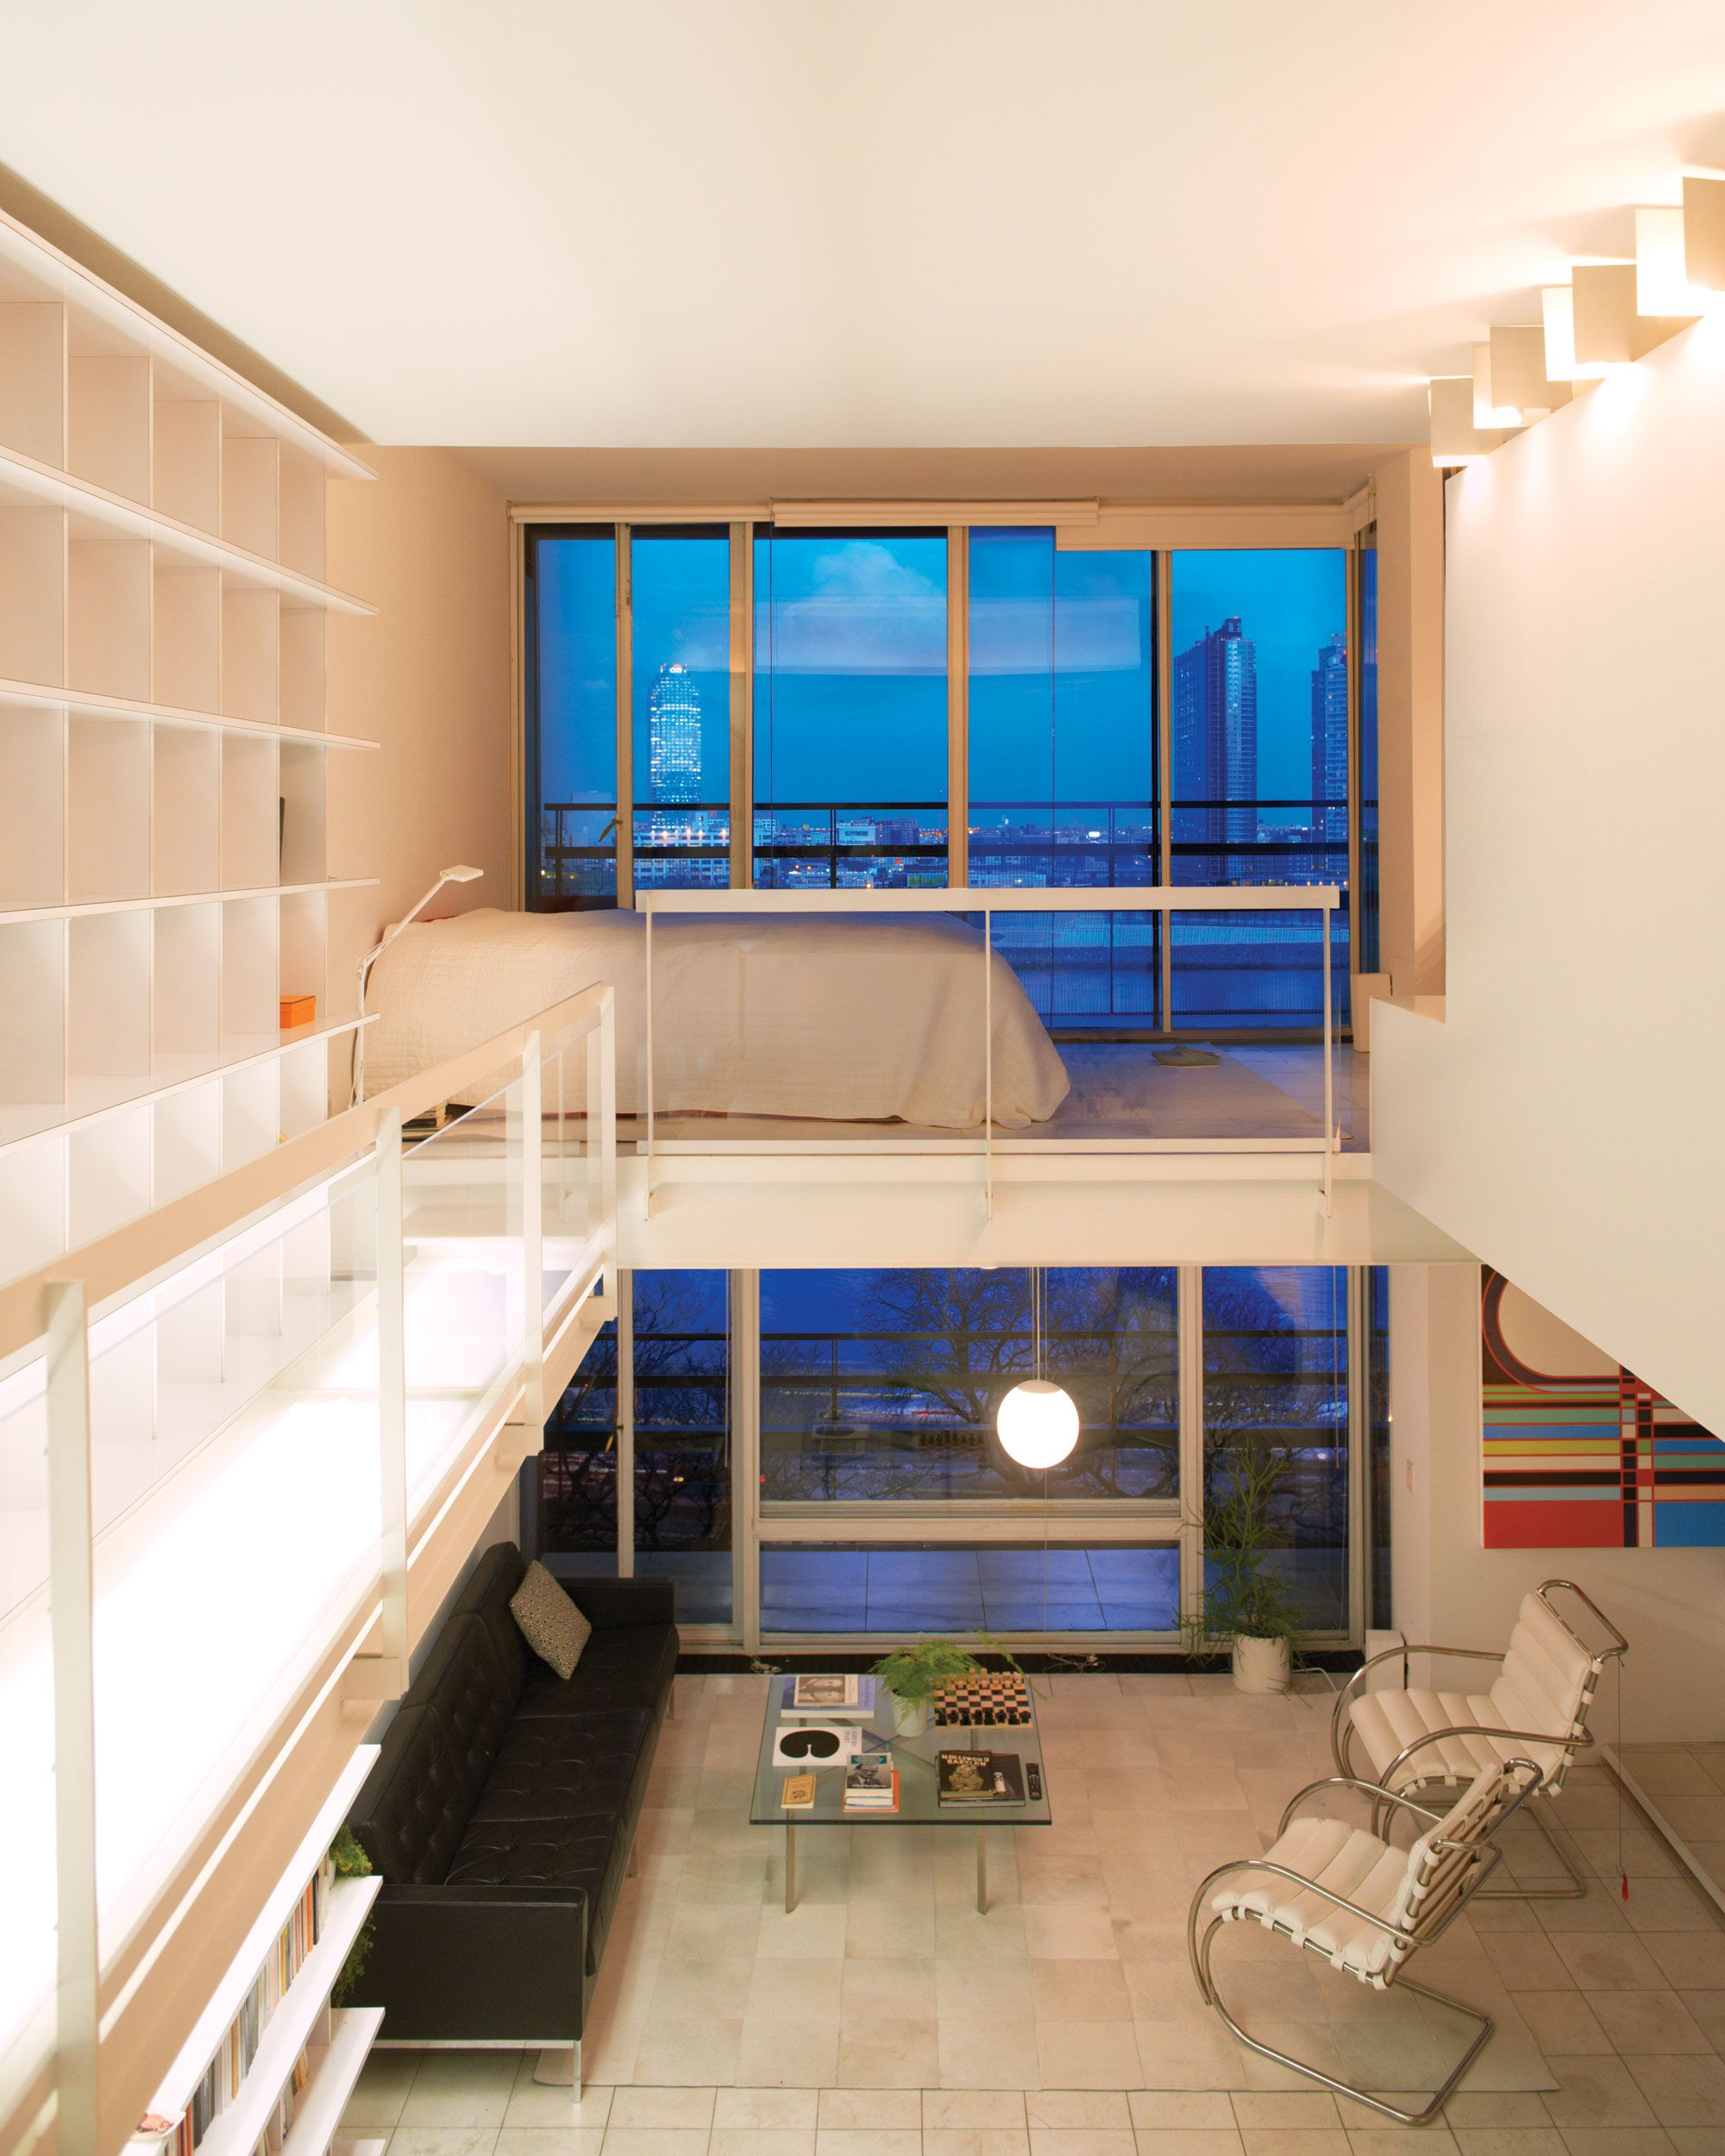 Apartment Inside Night thinking inside the box | catwalks, apartments and small living